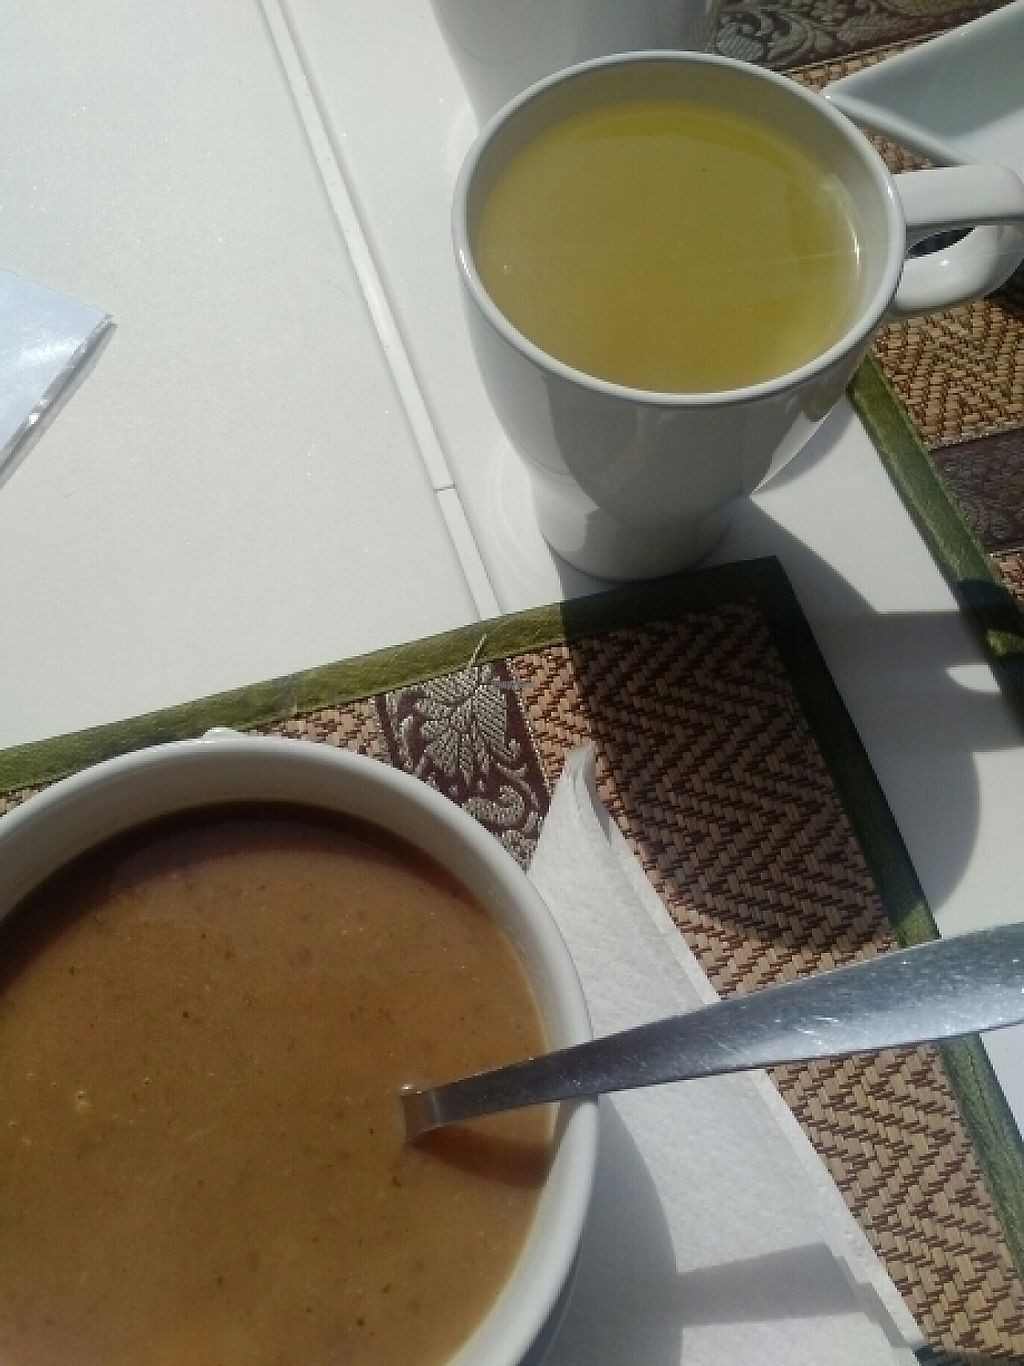 """Photo of Raw - Comida & Granel  by <a href=""""/members/profile/AvivaCohen"""">AvivaCohen</a> <br/>soup of the day <br/> April 11, 2017  - <a href='/contact/abuse/image/78201/247134'>Report</a>"""